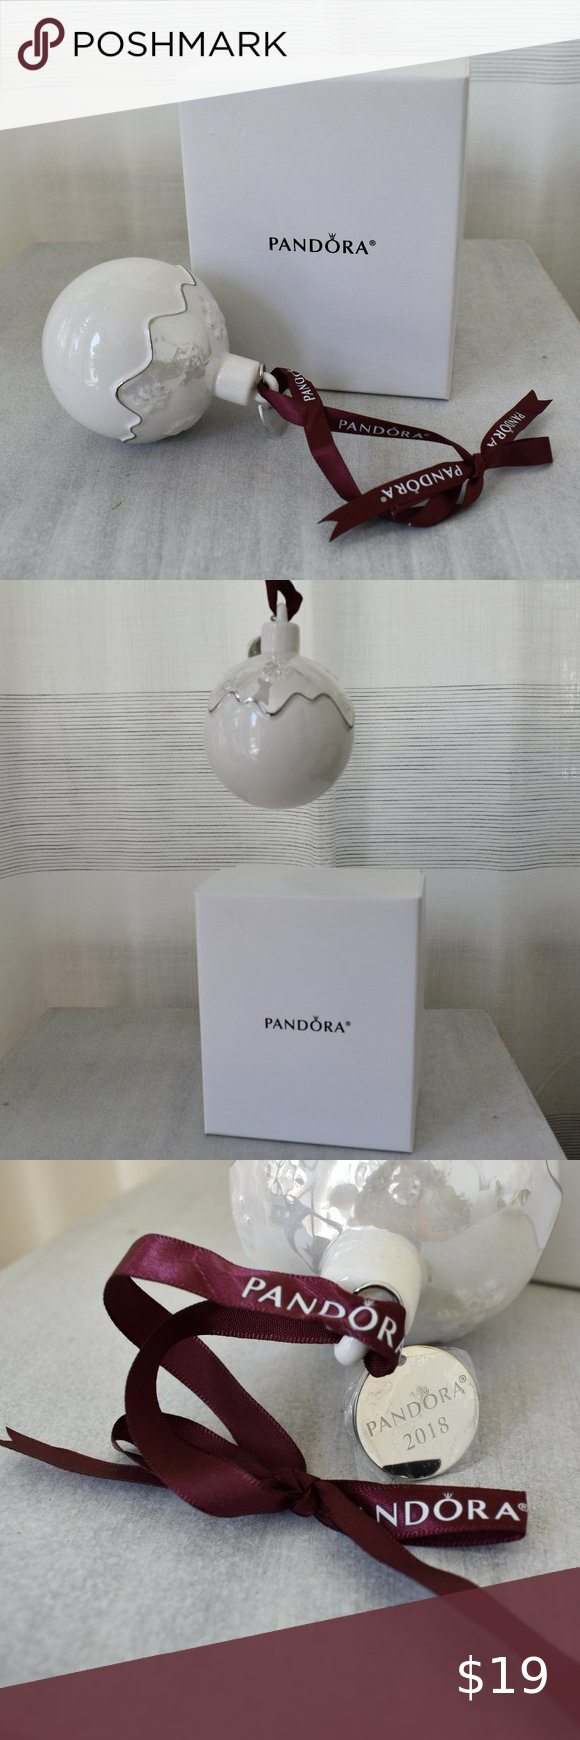 2020 Pandora Christmas Ornament PANDORA Limited Edition Christmas Ornament New in 2020 | Christmas